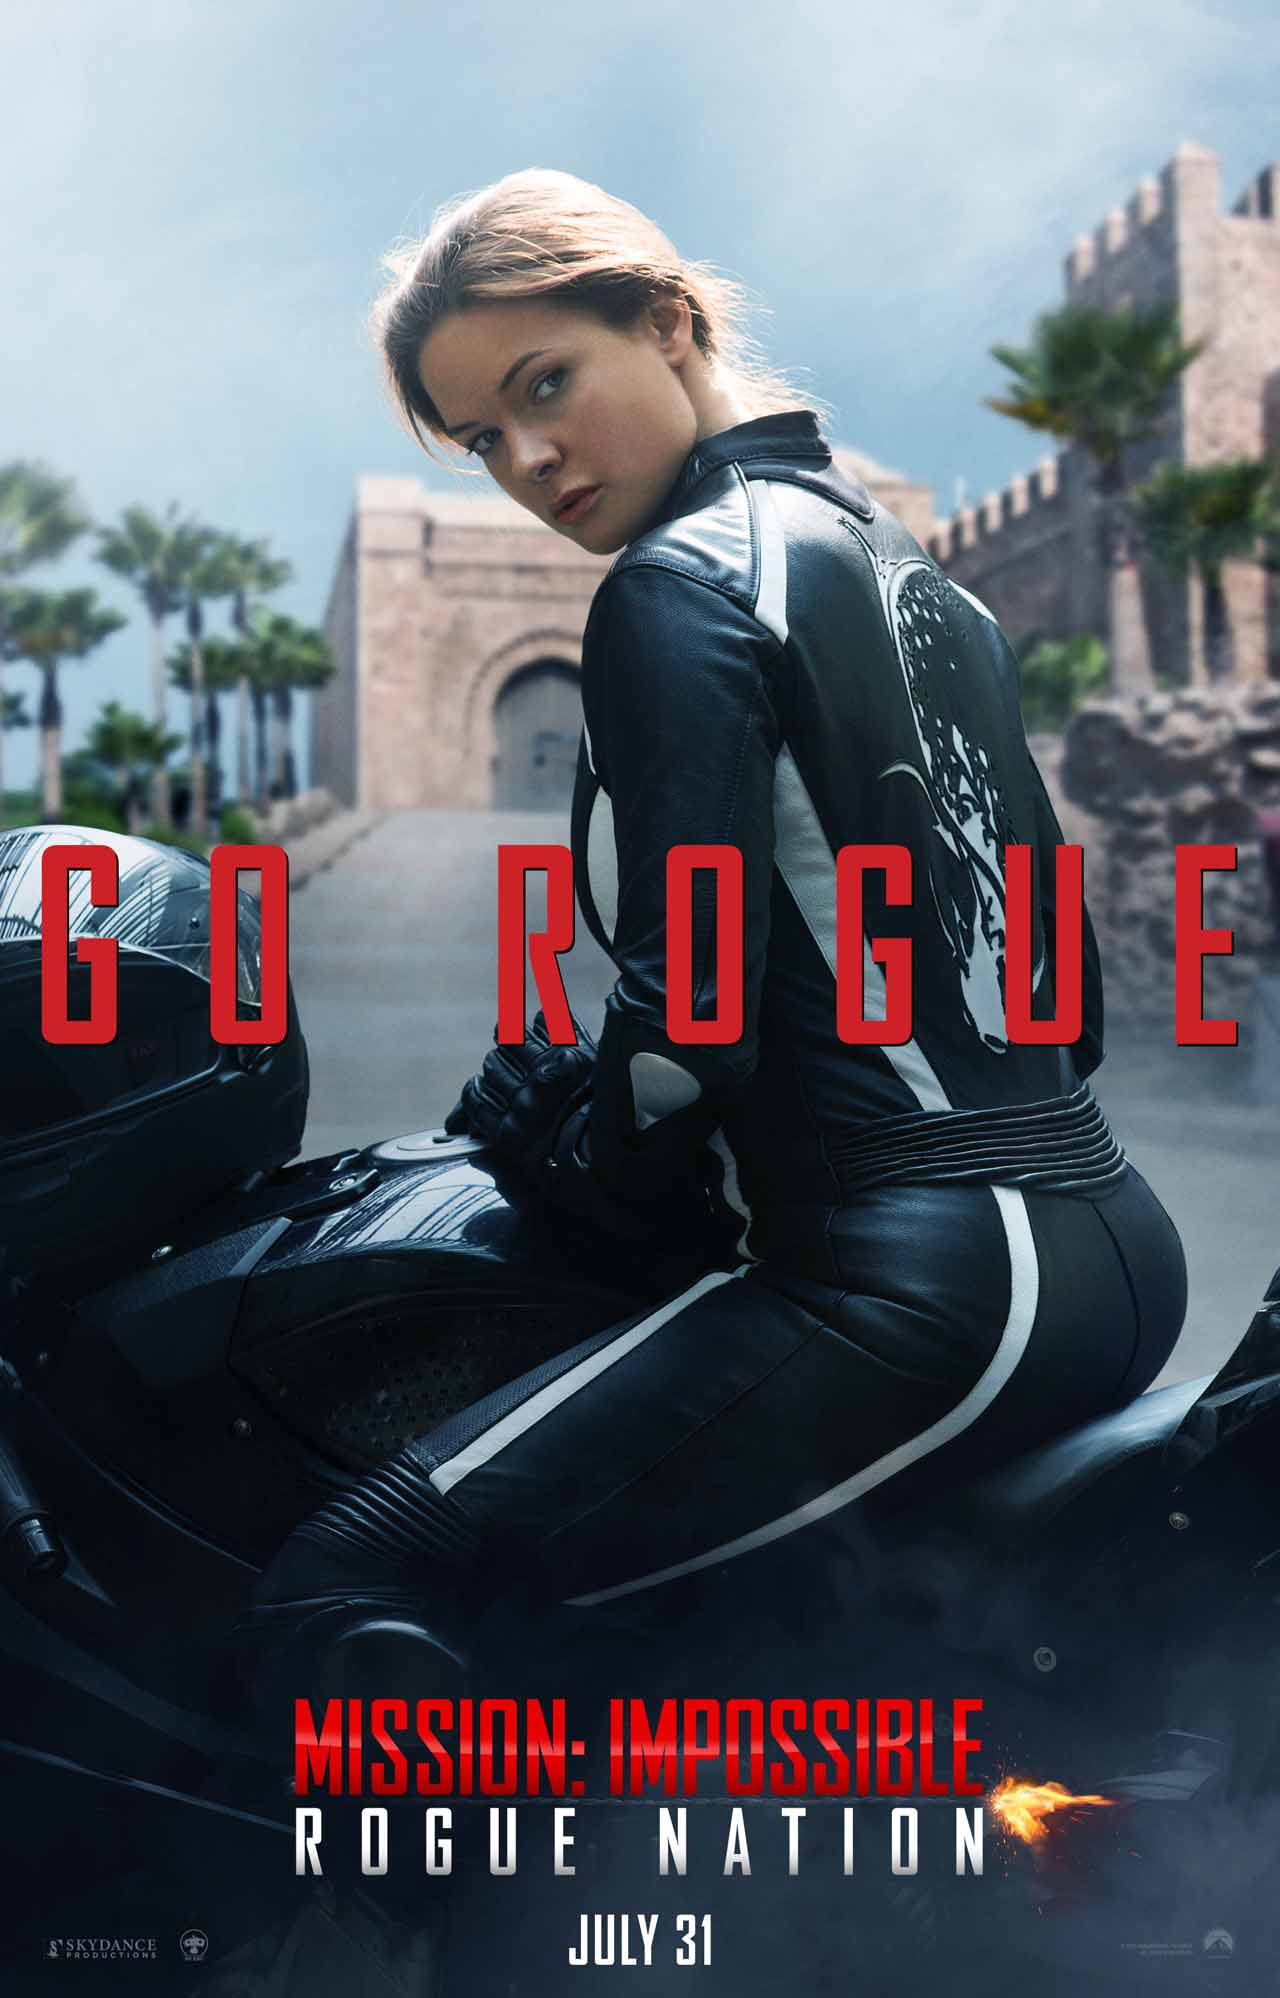 Mission: Impossible Rogue Nation